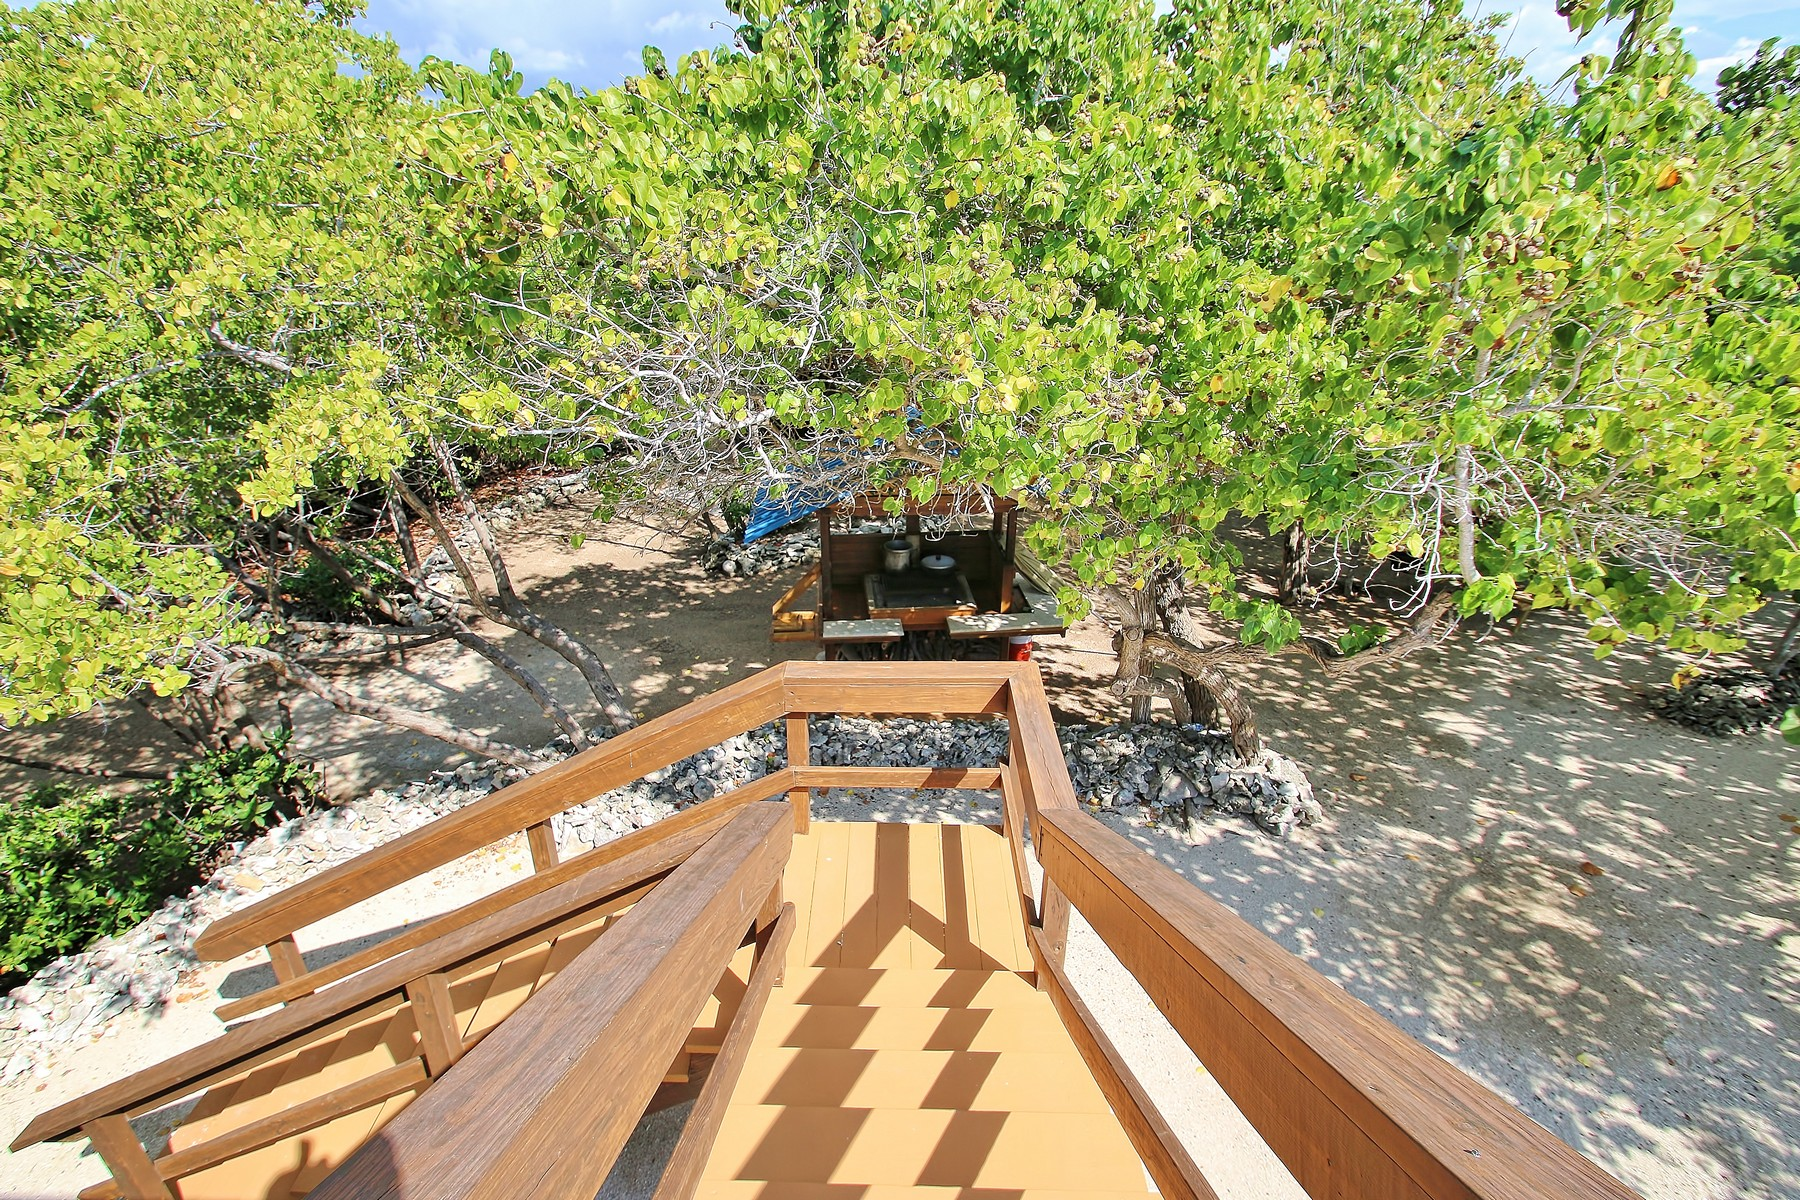 Additional photo for property listing at Private Island Cay, Salinas Private Island Salinas Salinas, Puerto Rico 00751 Puerto Rico